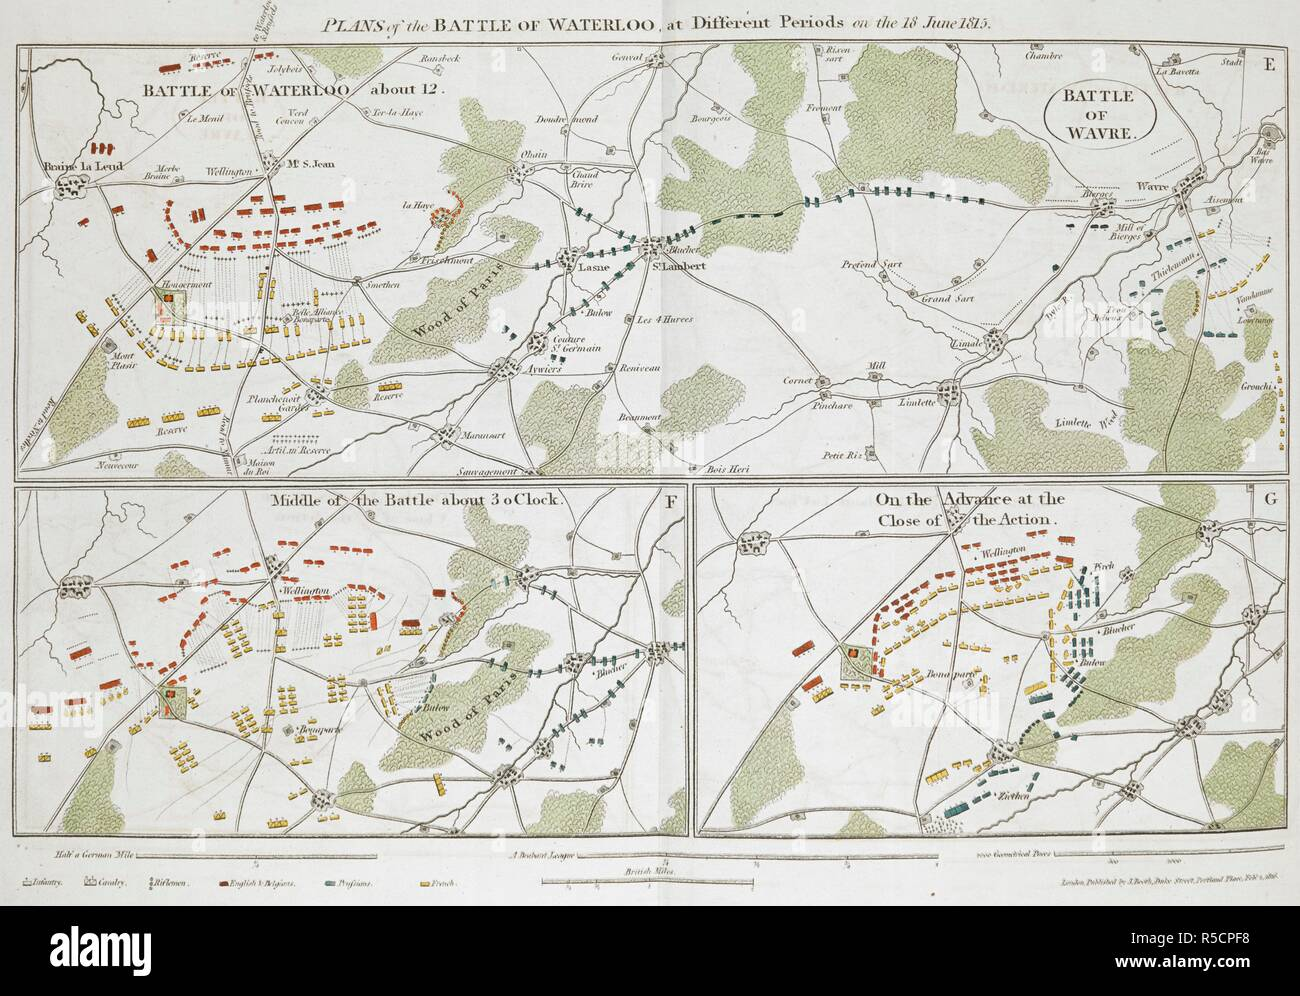 Plans of the Battle of Waterloo at different periods on the 18th June, 1815. ... about 12, about 3 O'clock and on the advance at the close of the action. The Battle of Waterloo, also of Ligny and Quatre-Bras described by ... a near observer ... [A narrative by C. A. Eaton, with a sketch by J. Waldie... from sketches by Captain G. Jones. 2 vol. John Booth; T. Egerton: London, 1817. Source: G.5651 part 2, 2nd plate. Author: Eaton, Charlotte Anne. - Stock Image